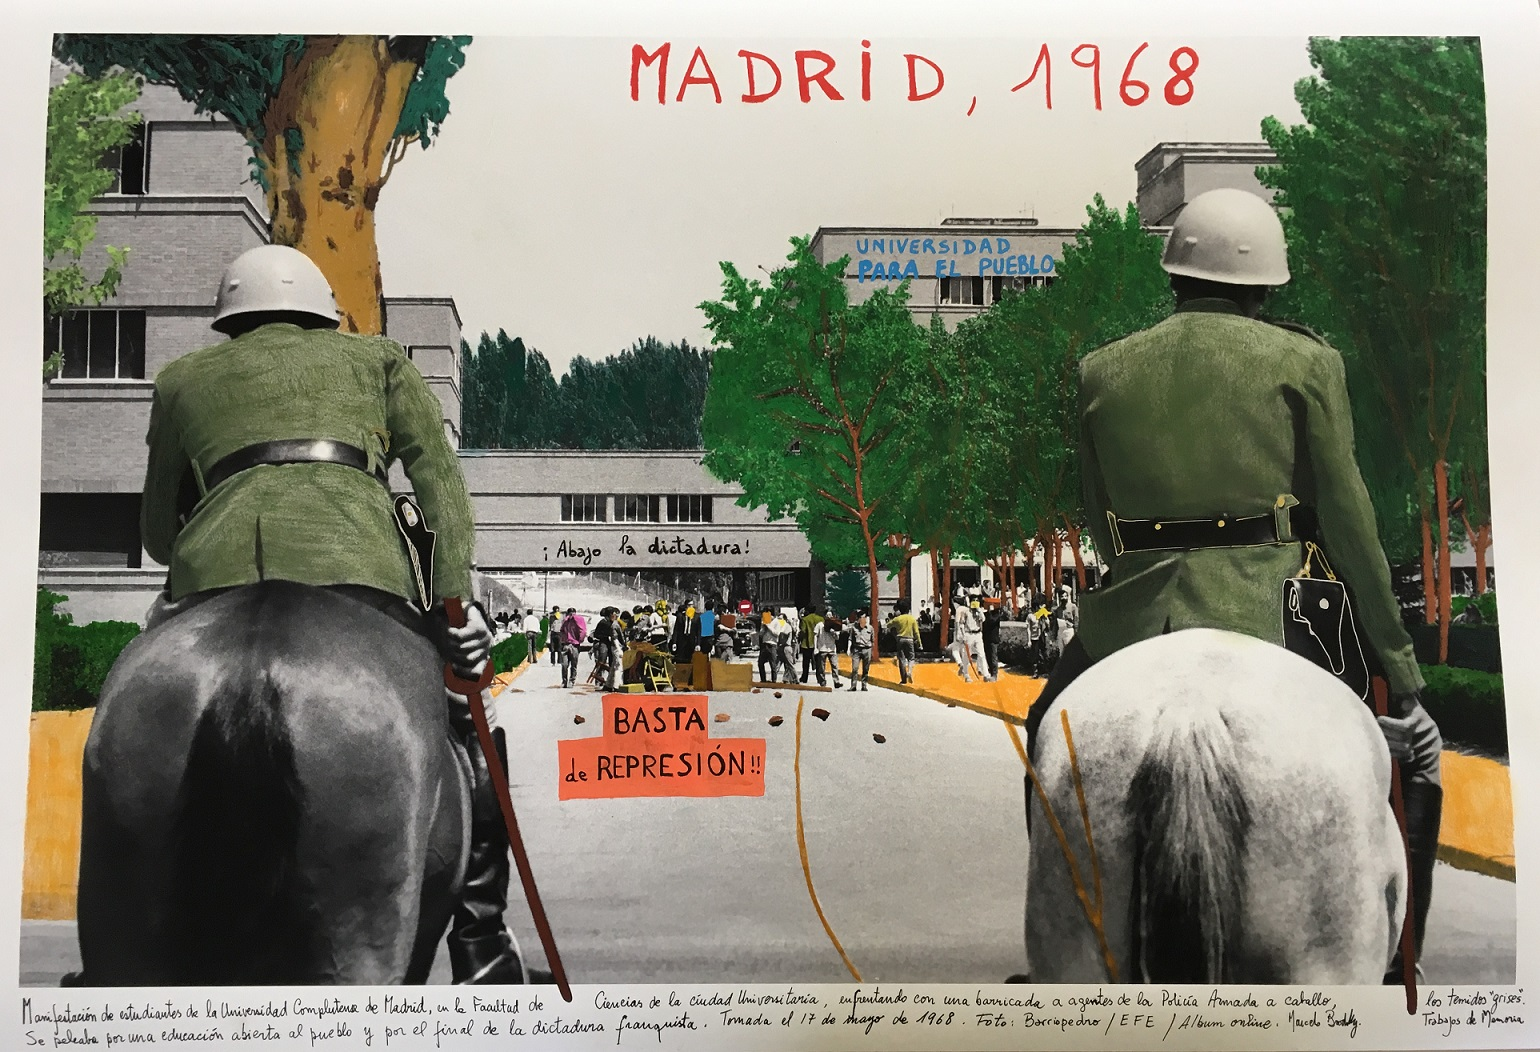 Marcelo Brodsly 2018. Intervened photography. 60 x 90 cm. Unique piece.